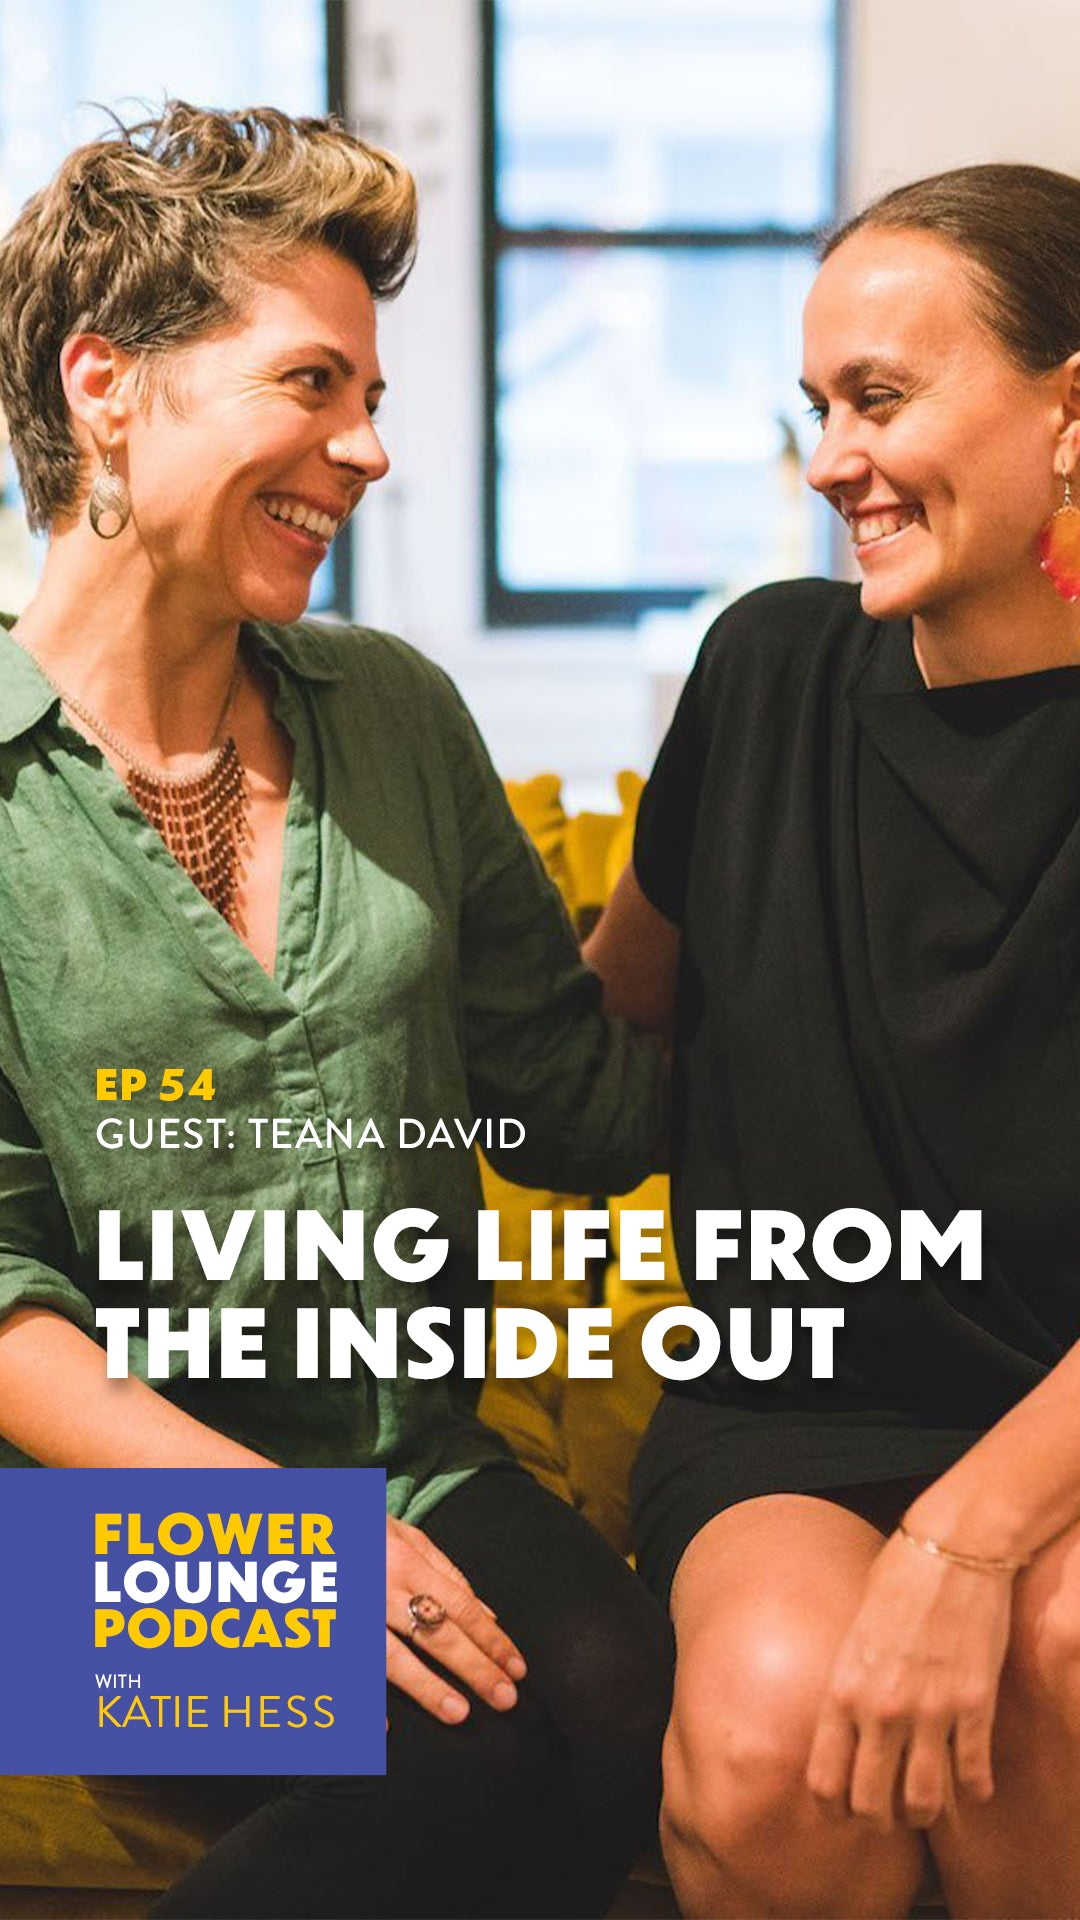 Living Life from the Inside Out with Teana David on the Flowerlounge Podcast with Katie Hess